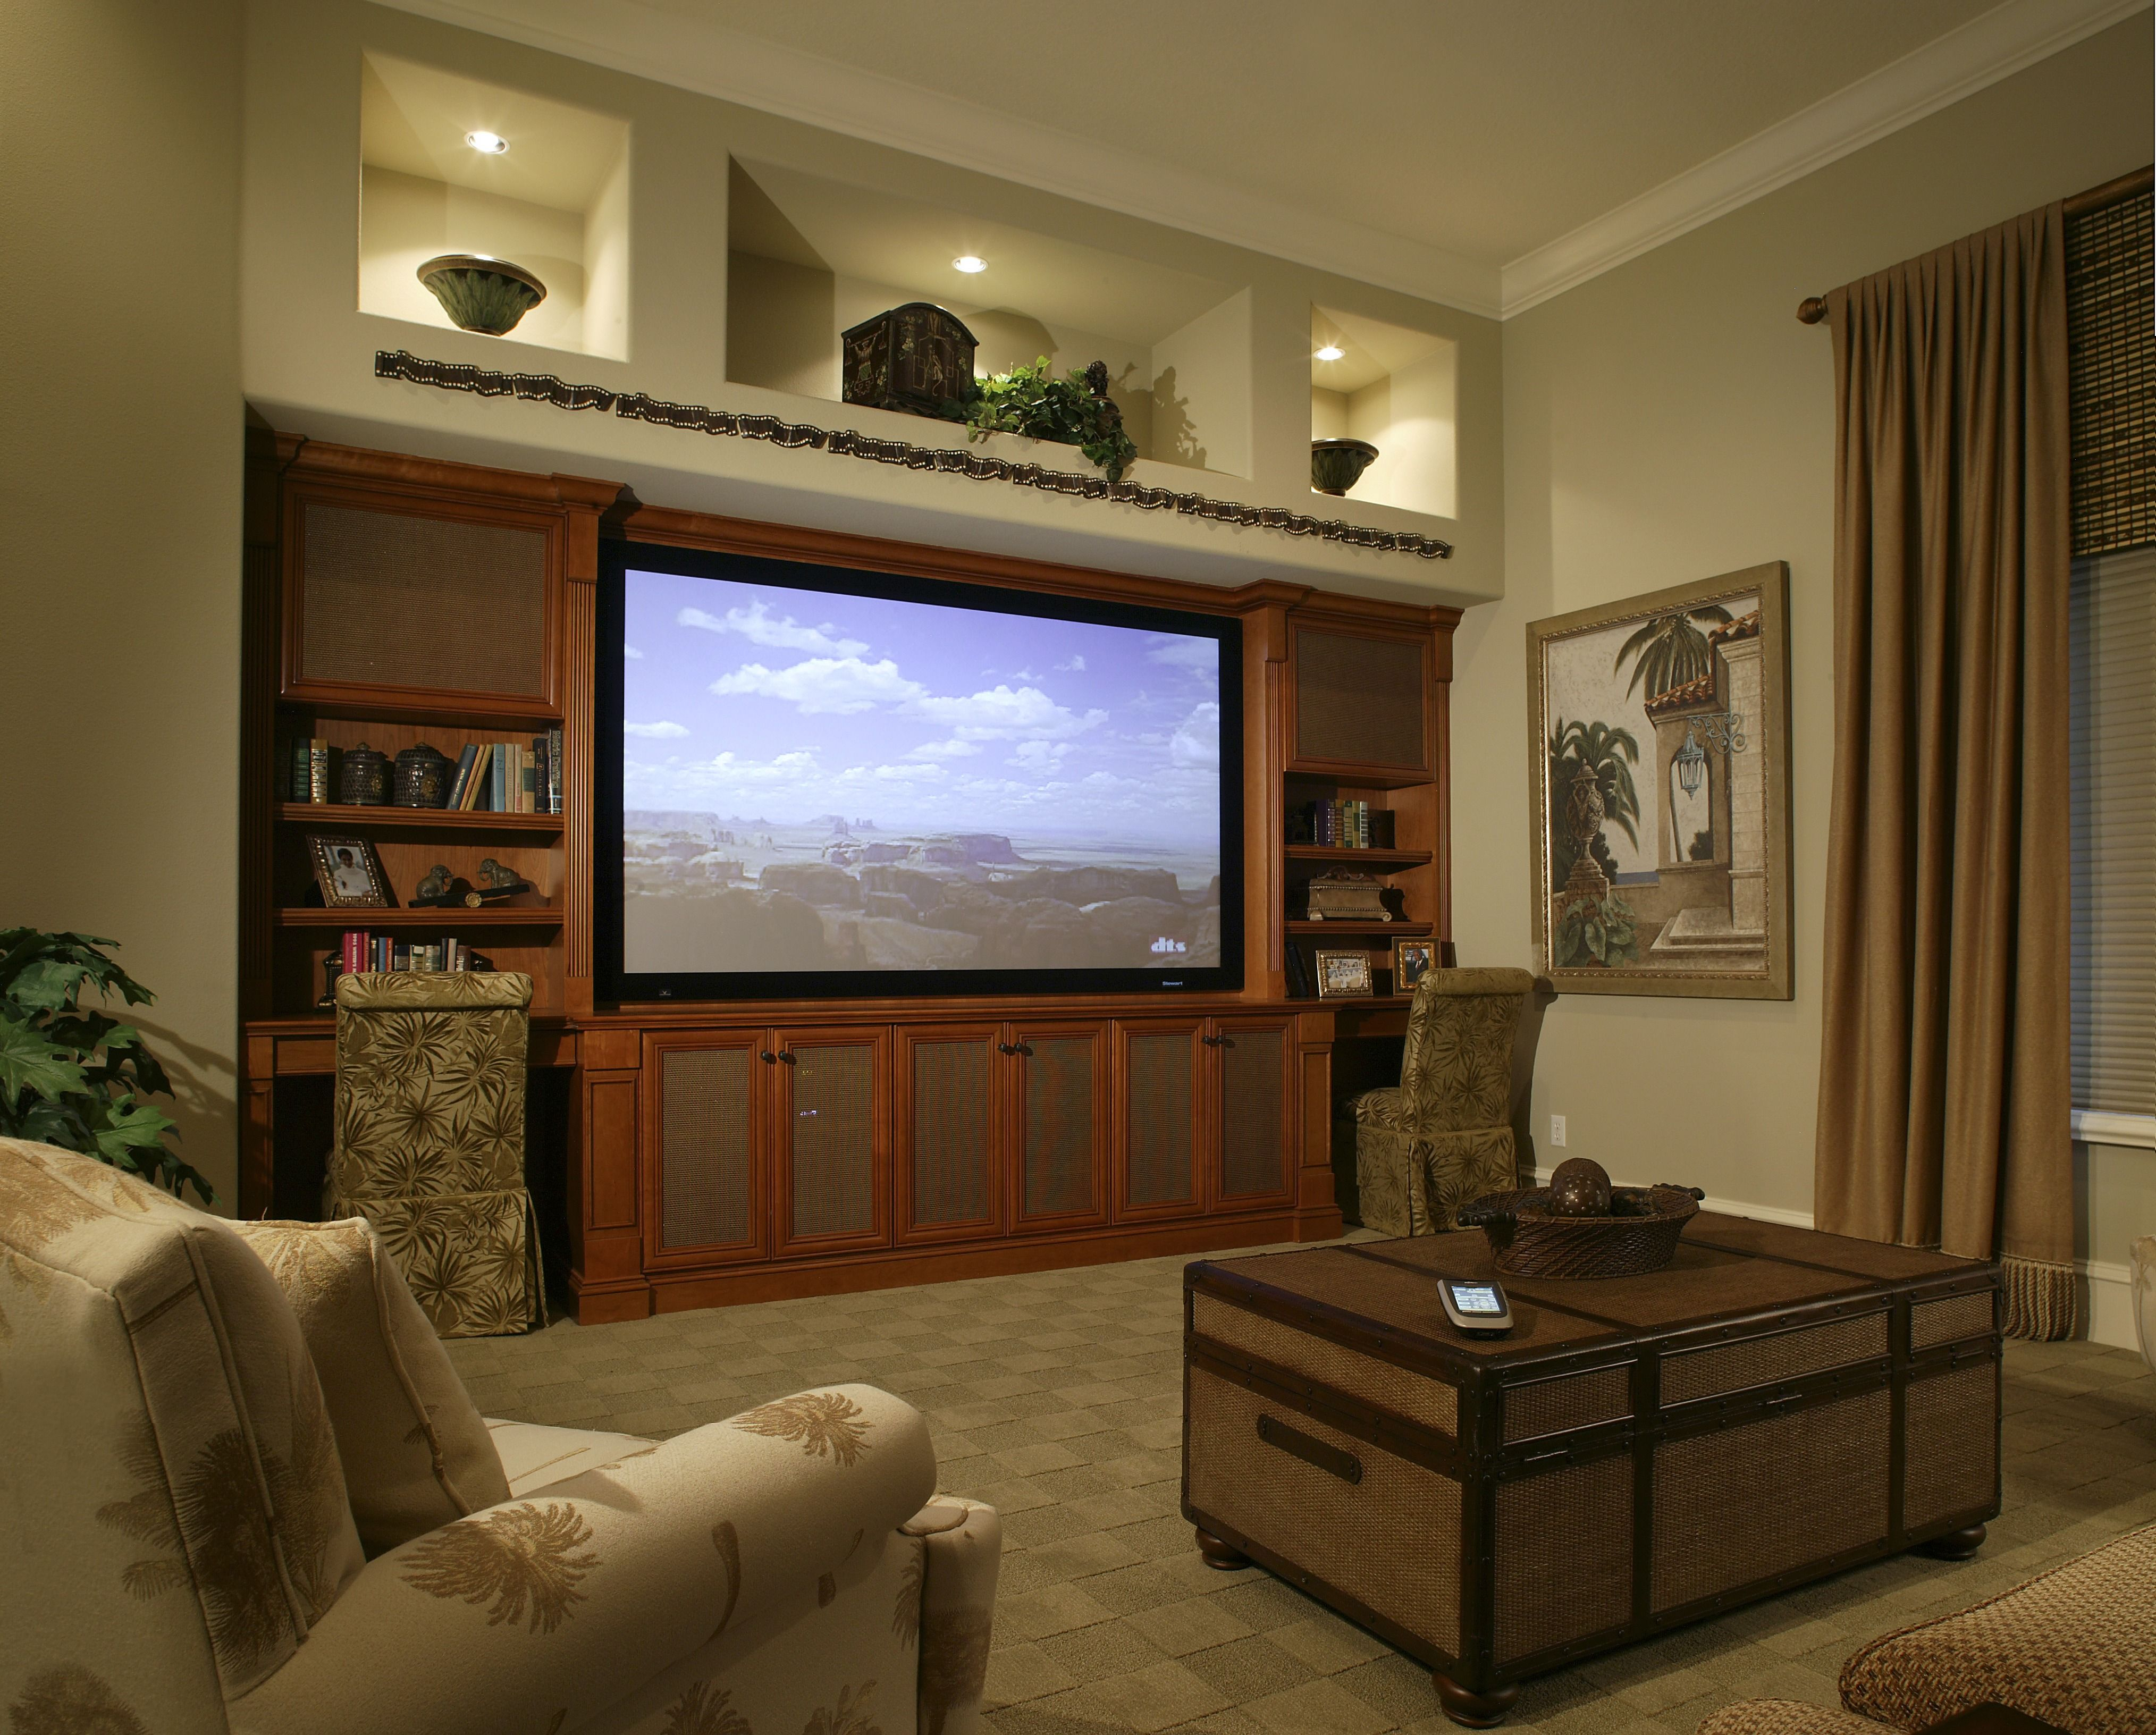 Home Theater Services Costs | Open shelves, Design elements and Desks